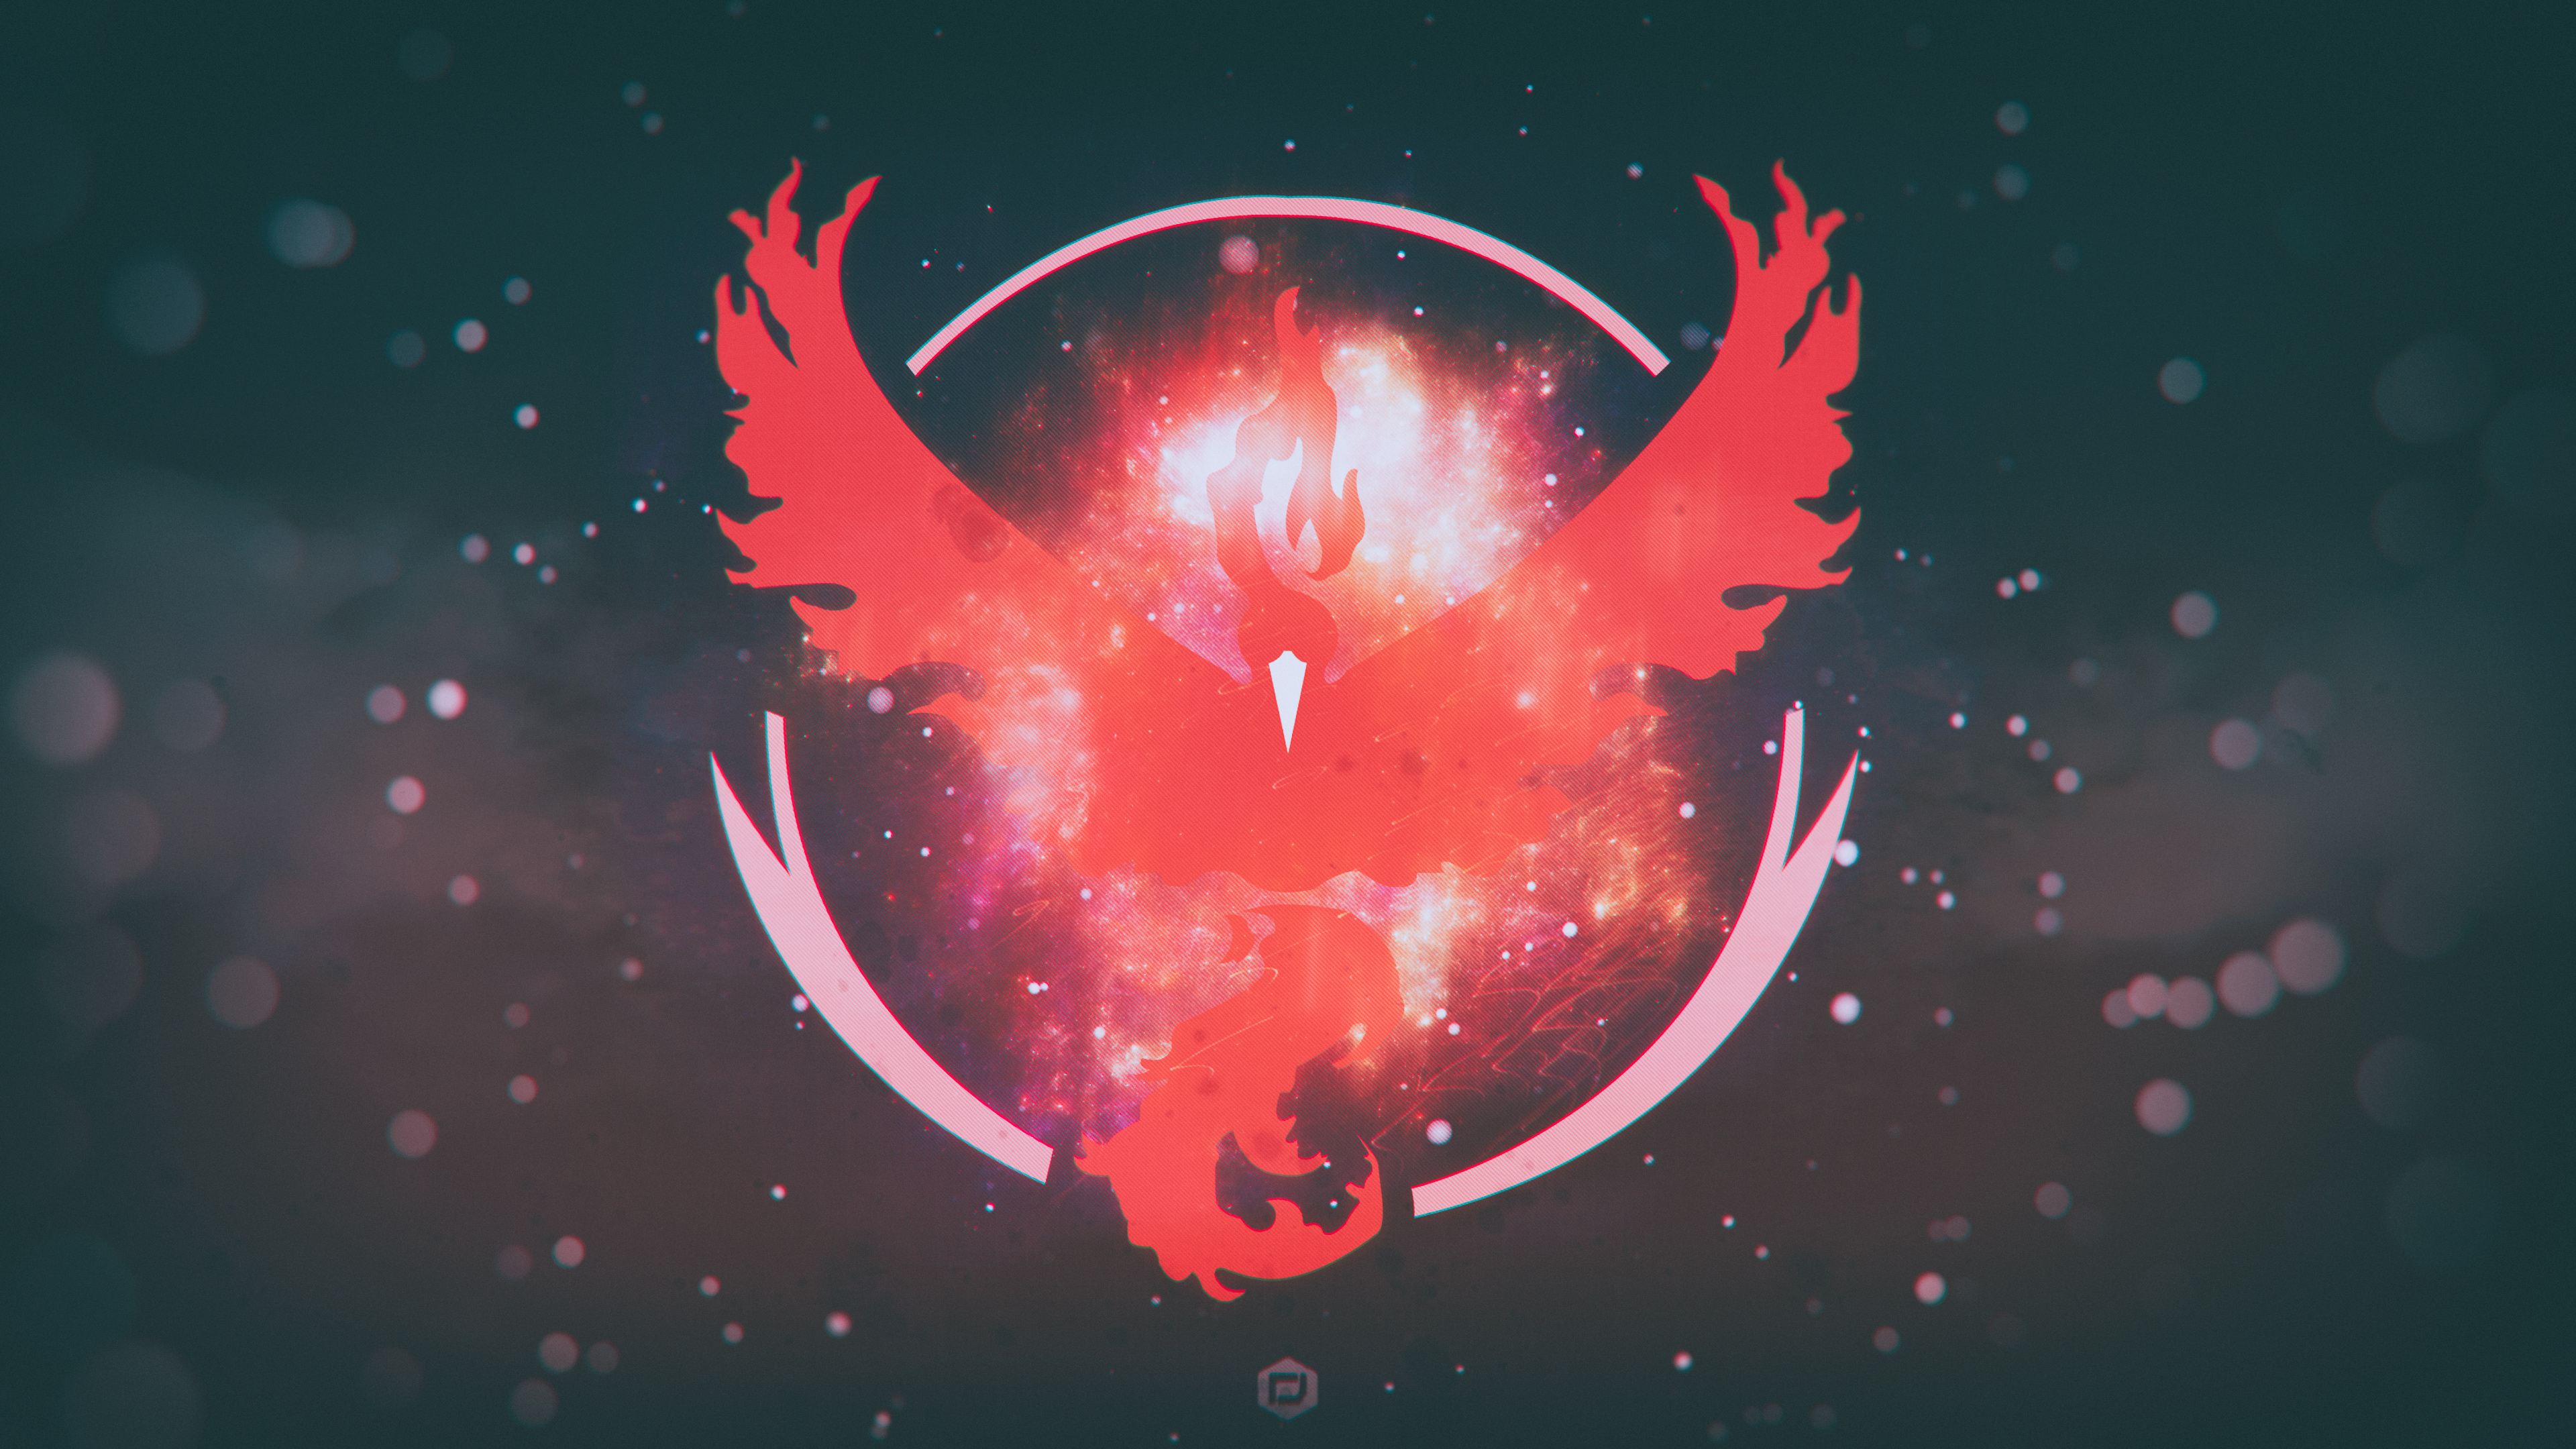 Pokemon Go Team Valor Team Red 4K wallpaper